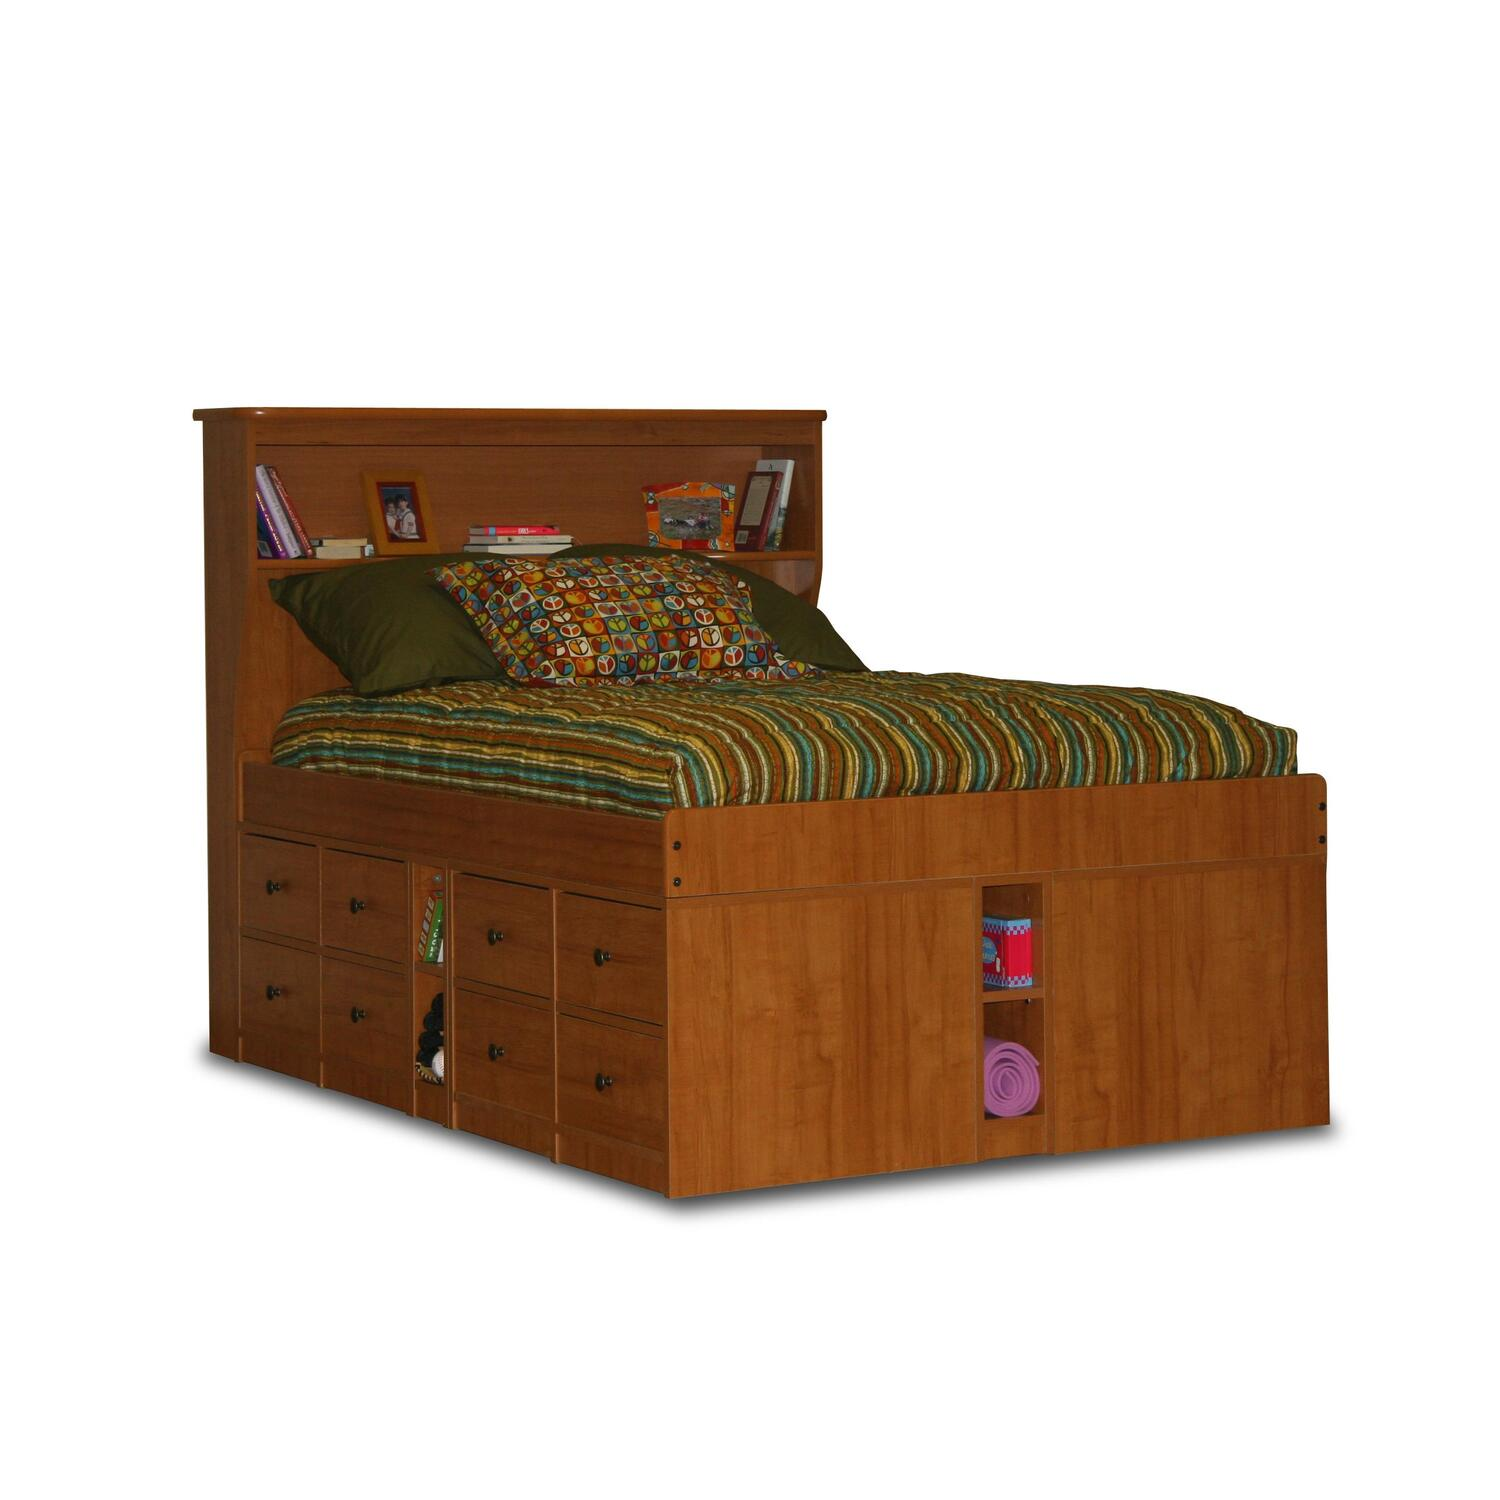 Berg furniture jr captain 39 s bed full with 16 drawers 8 Captains bed full